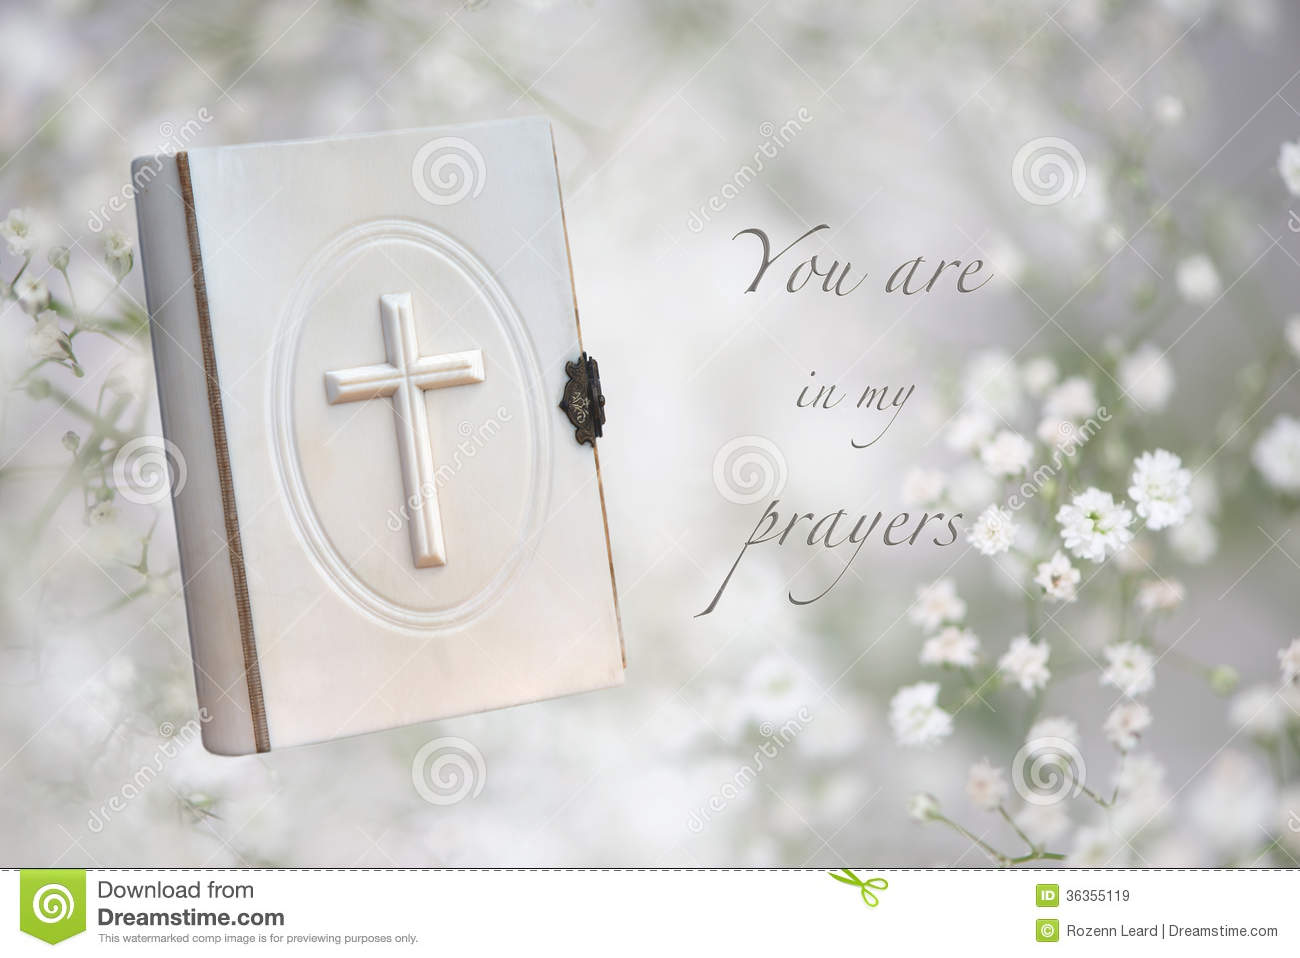 Funeral prayers card stock image image of flower loss 36355119 funeral prayers card izmirmasajfo